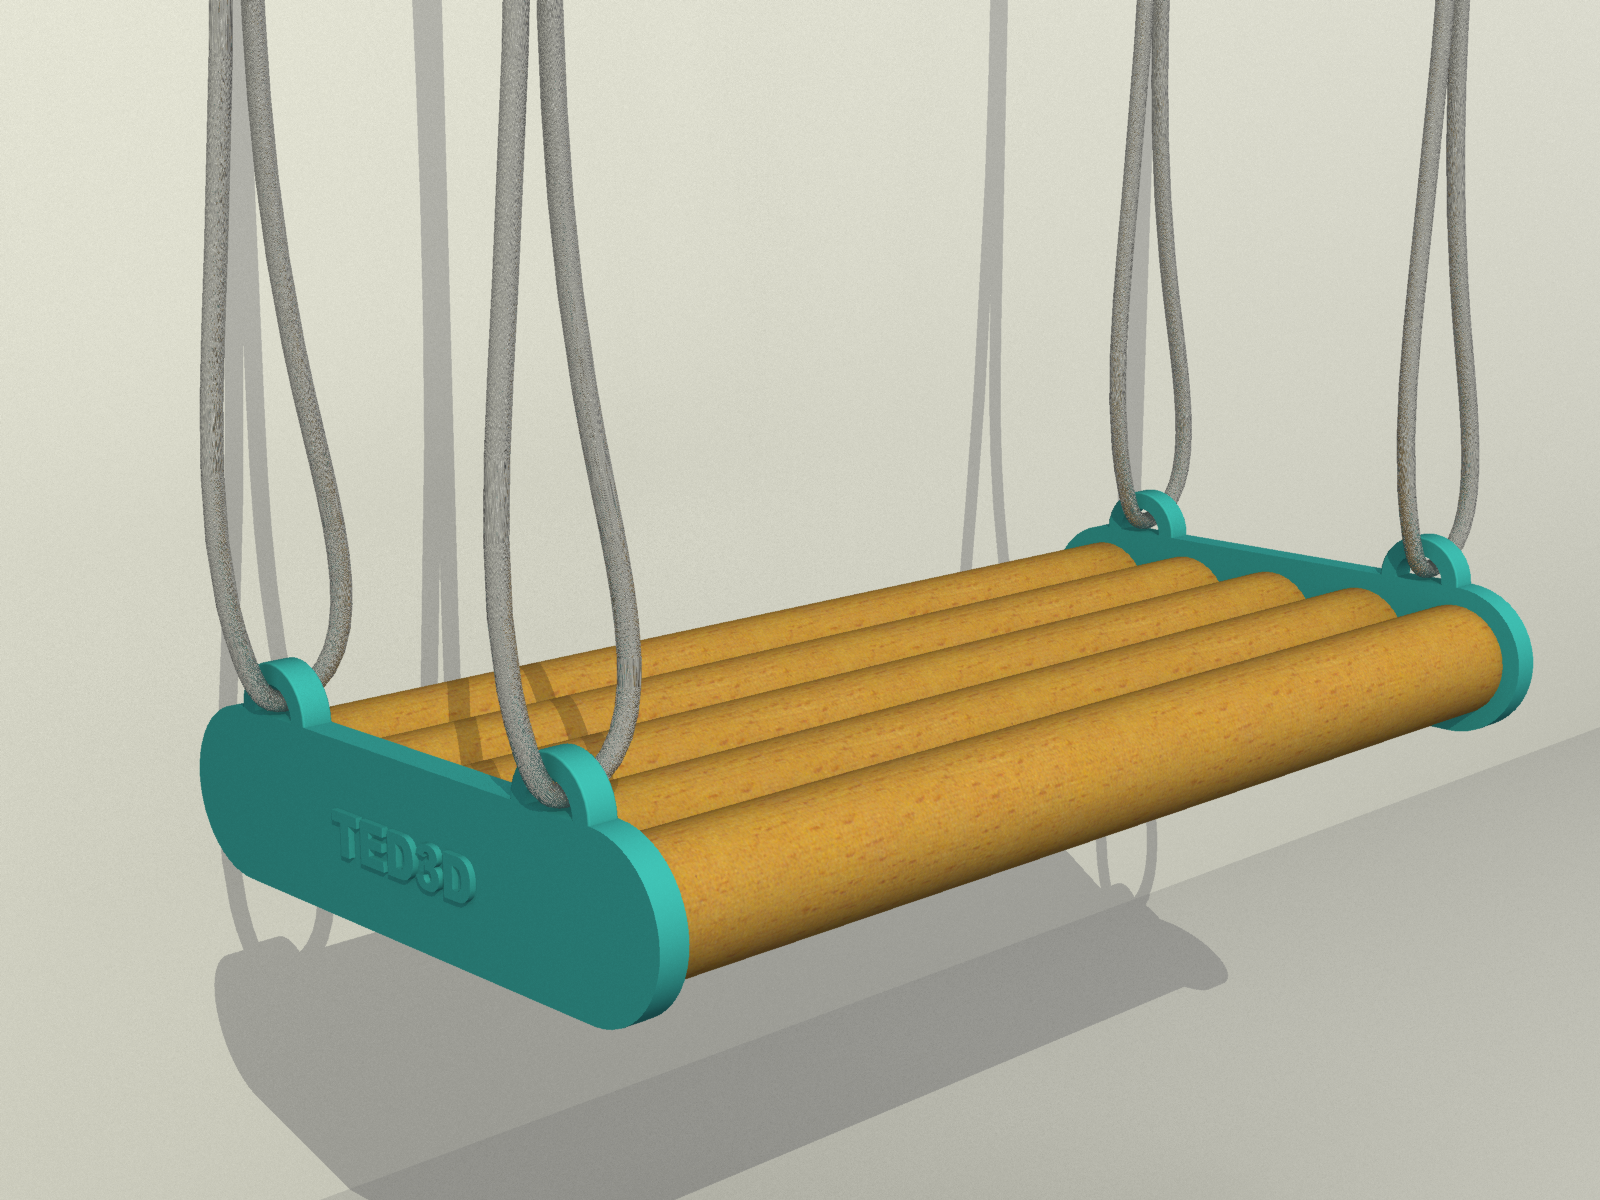 SWING_2.png Download free STL file SWING • 3D printing template, TED3D